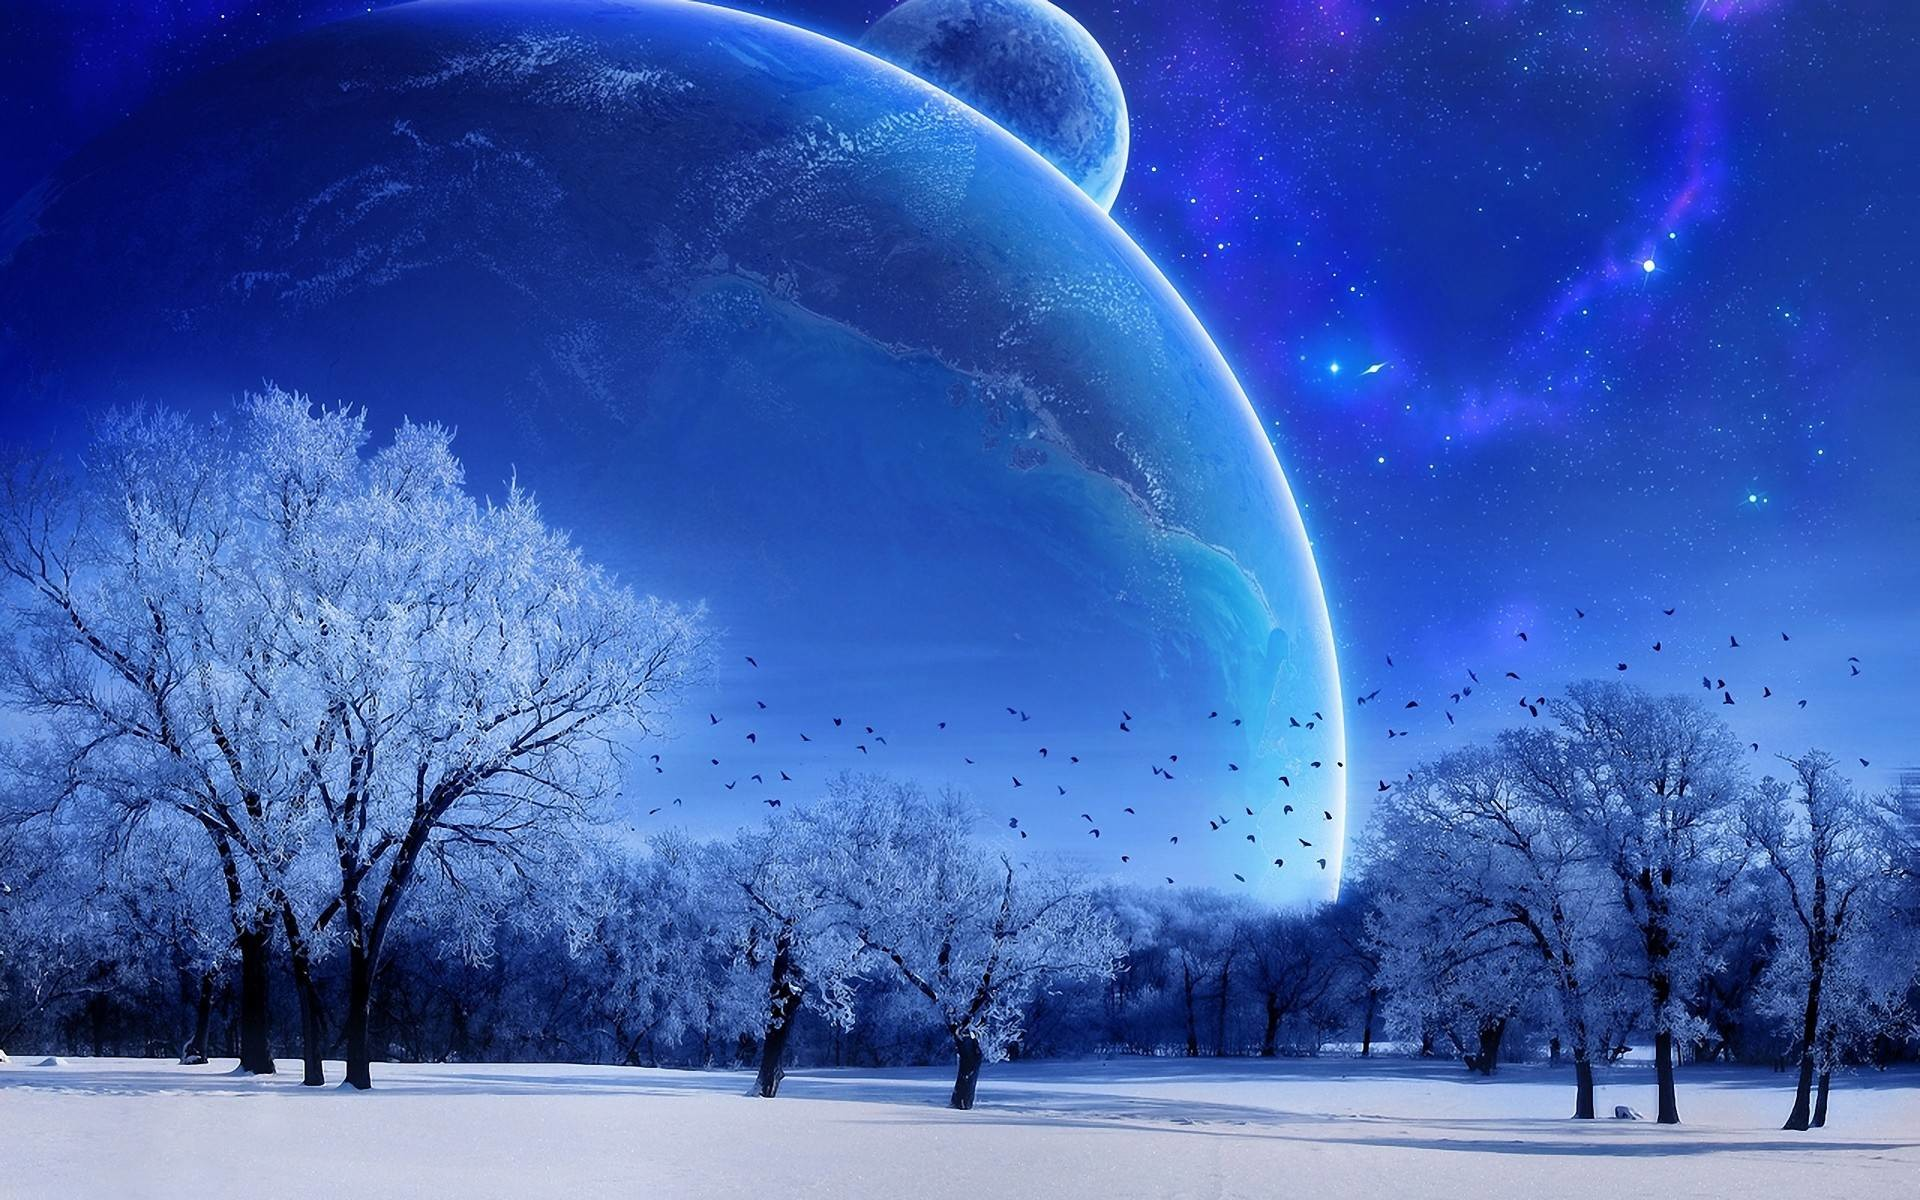 1920x1200 winter wonderland planet background